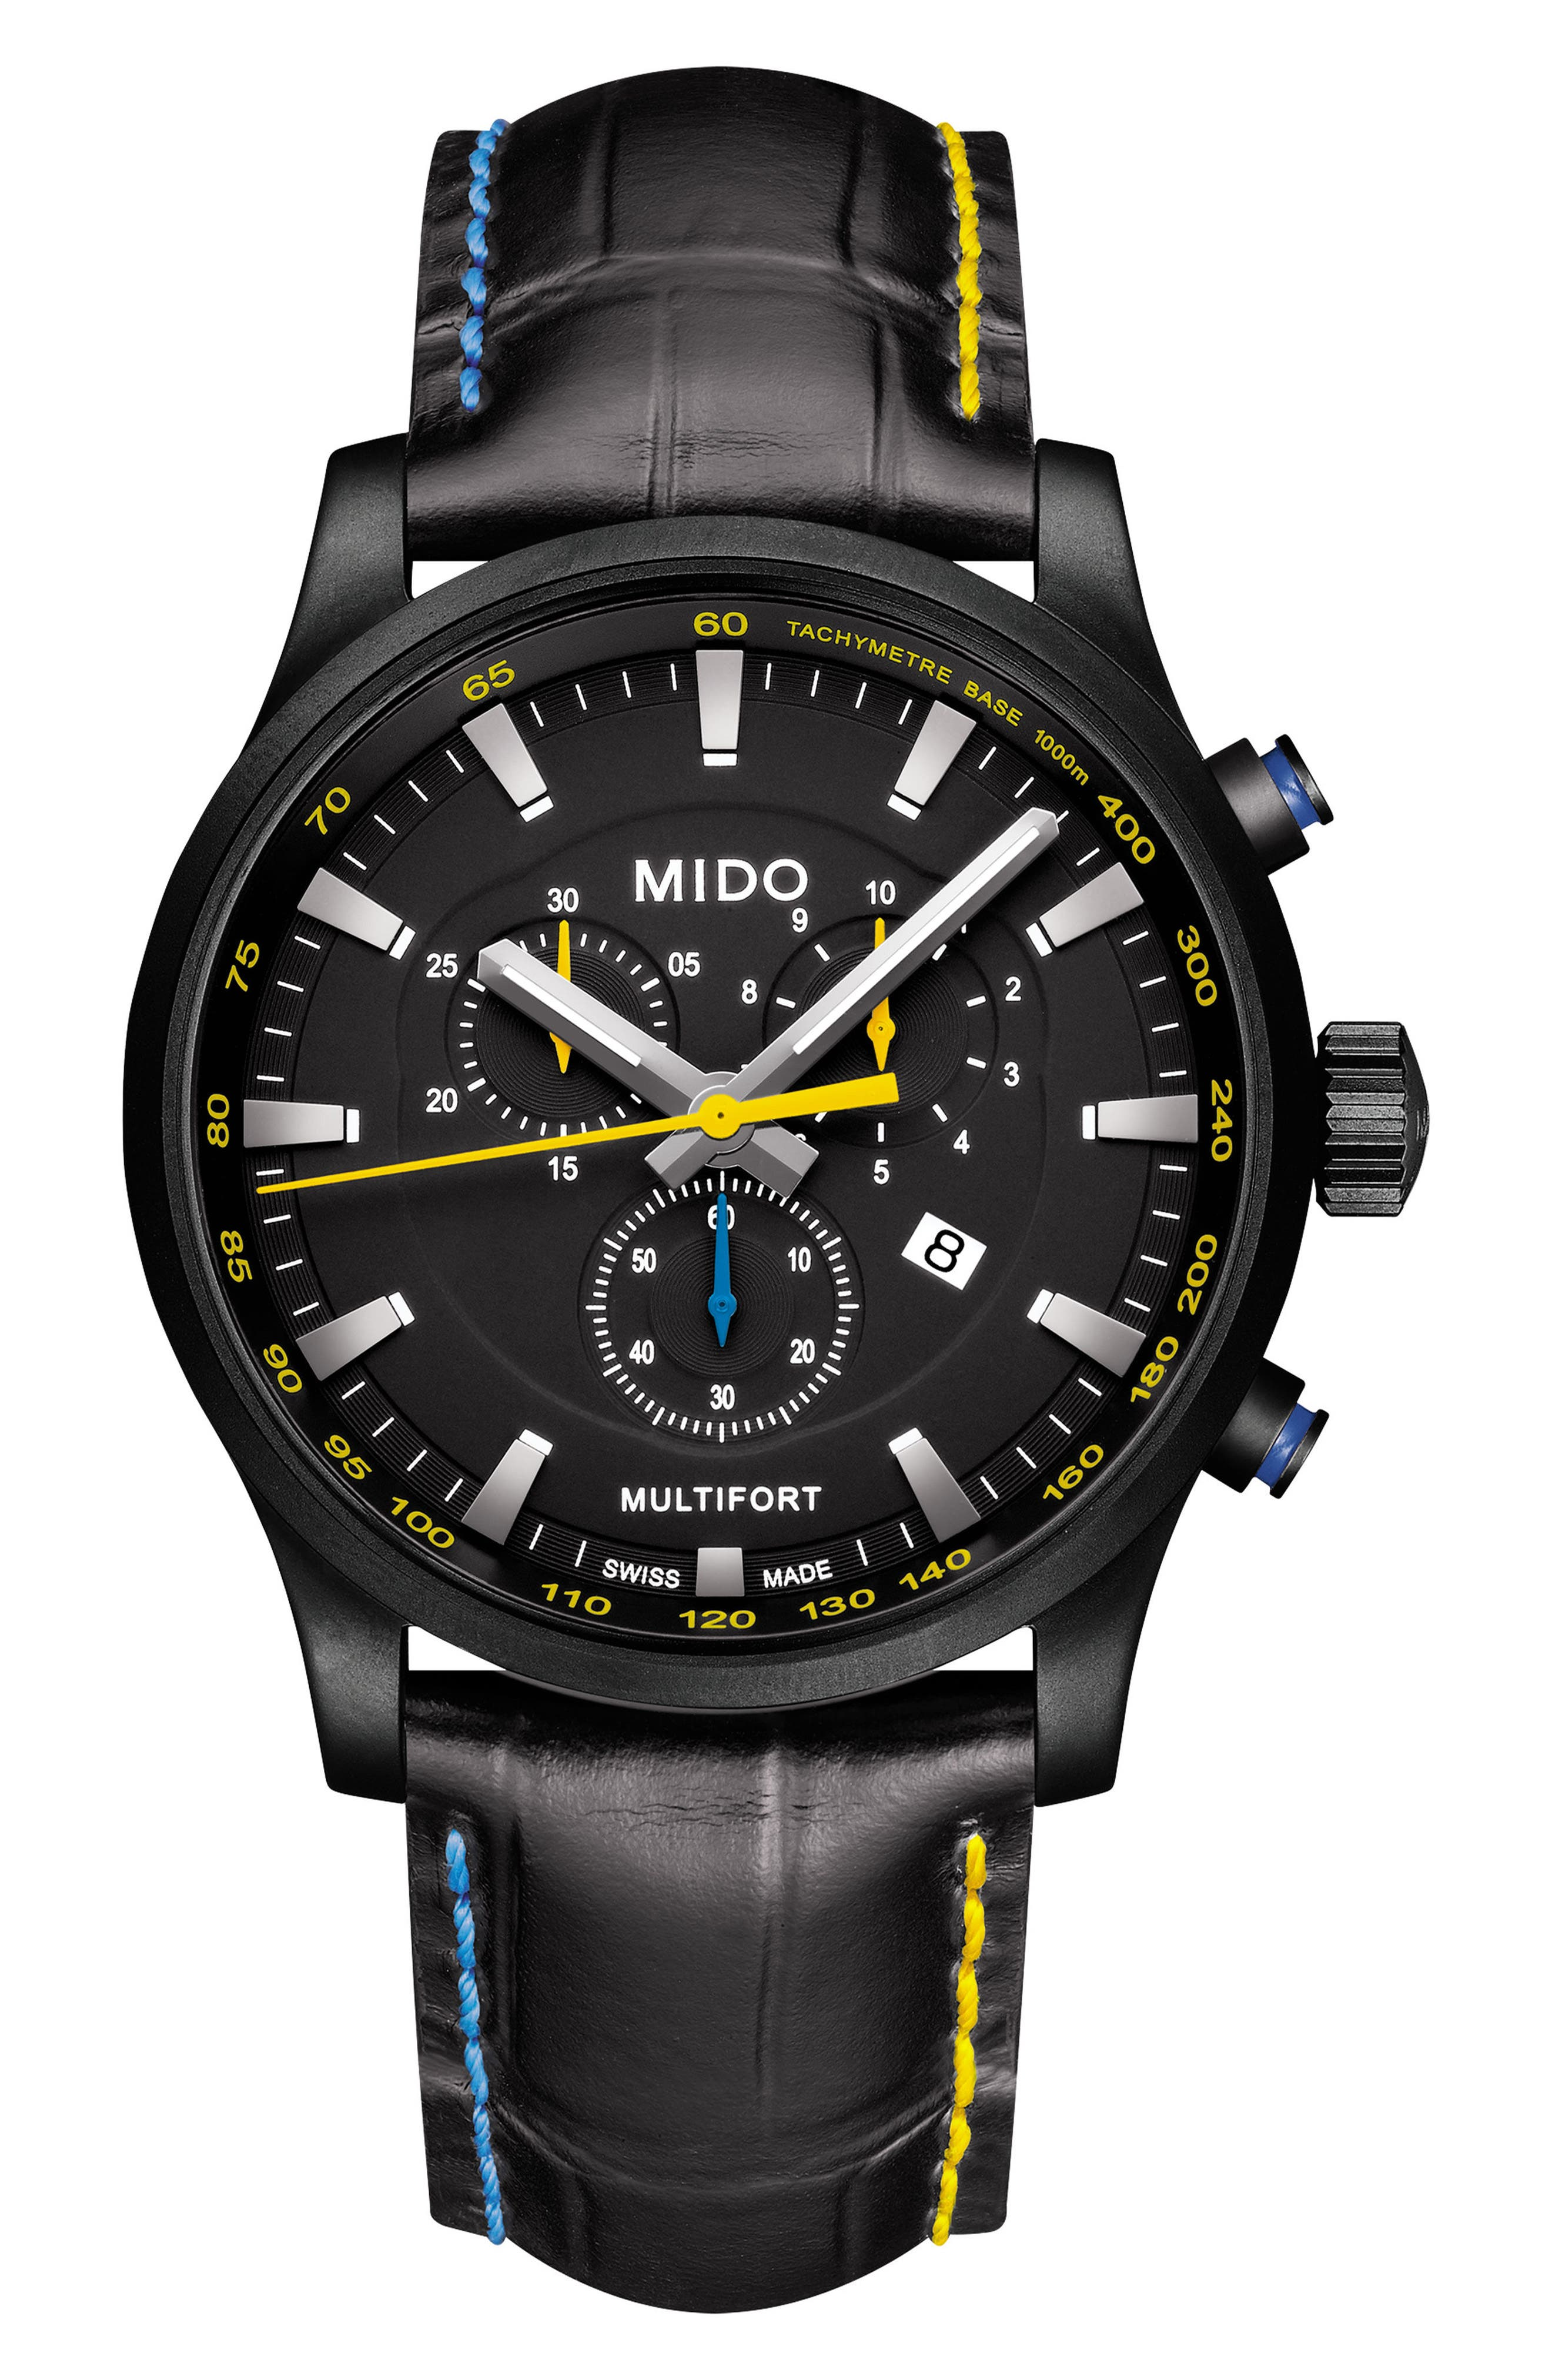 MIDO MULTIFORT CHRONOGRAPH LEATHER STRAP WATCH, 42MM